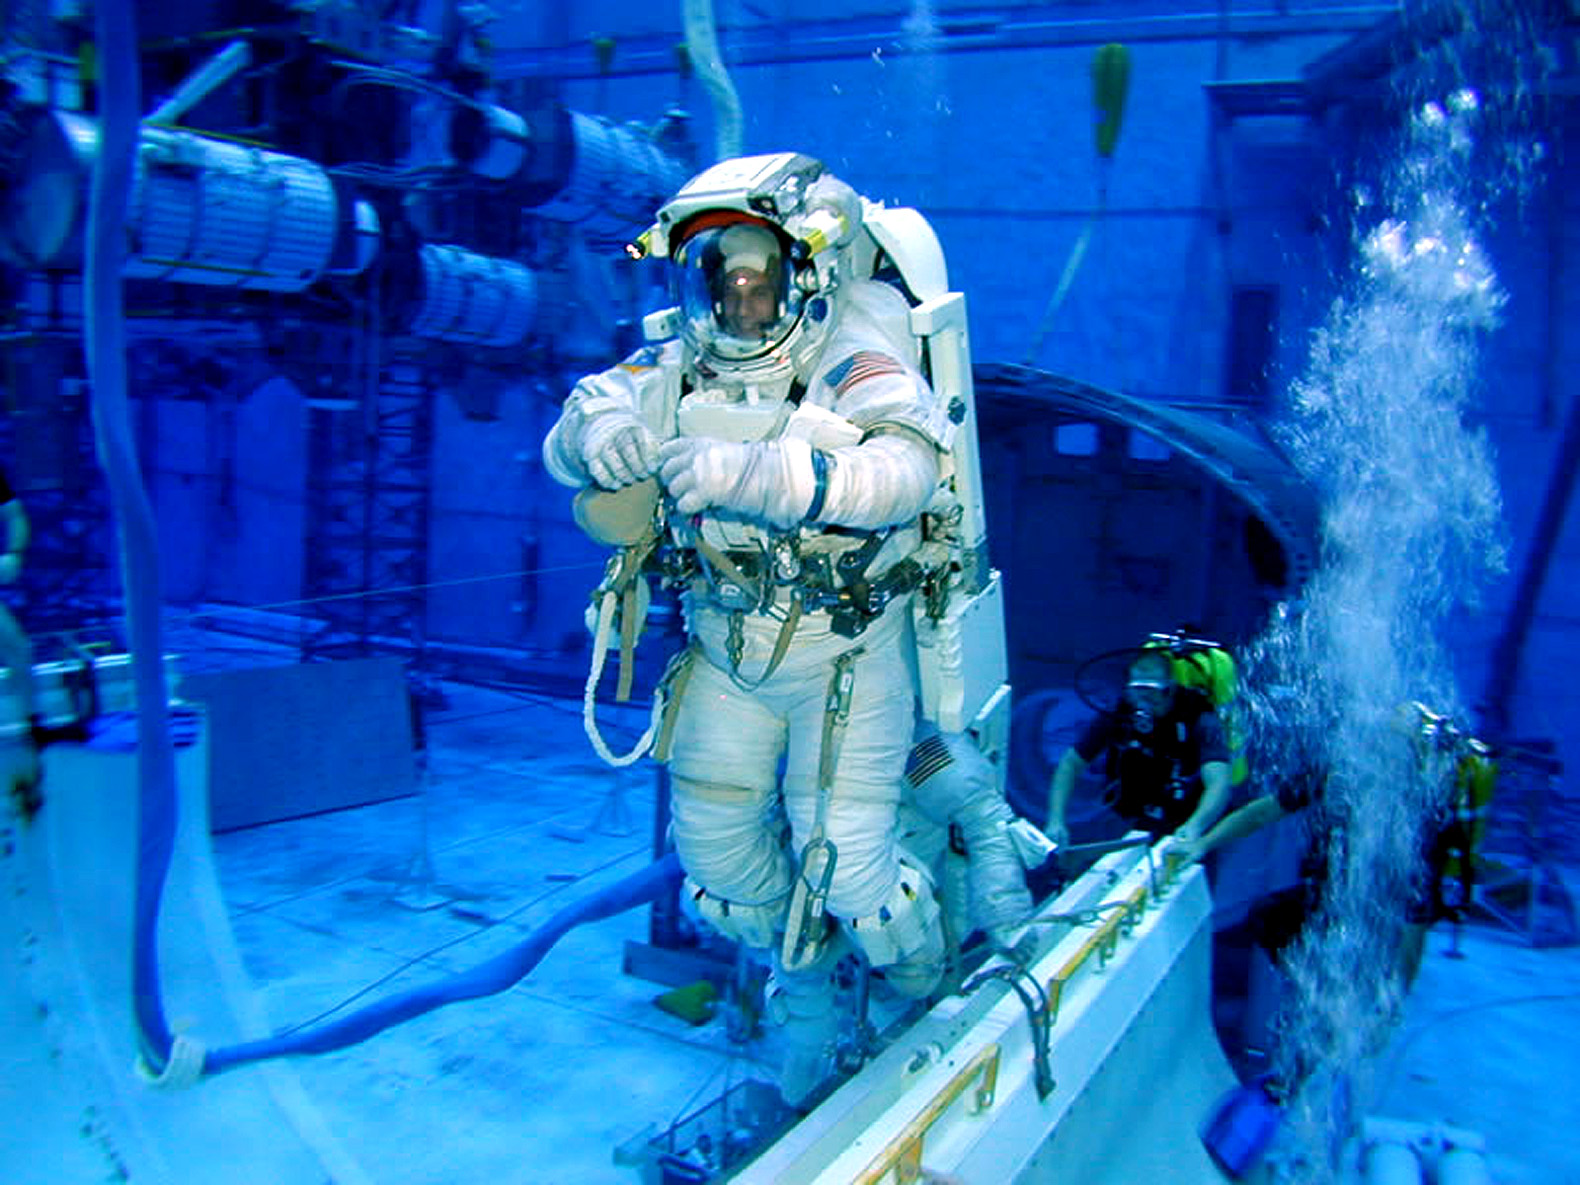 A Nasa astronaut training underwater